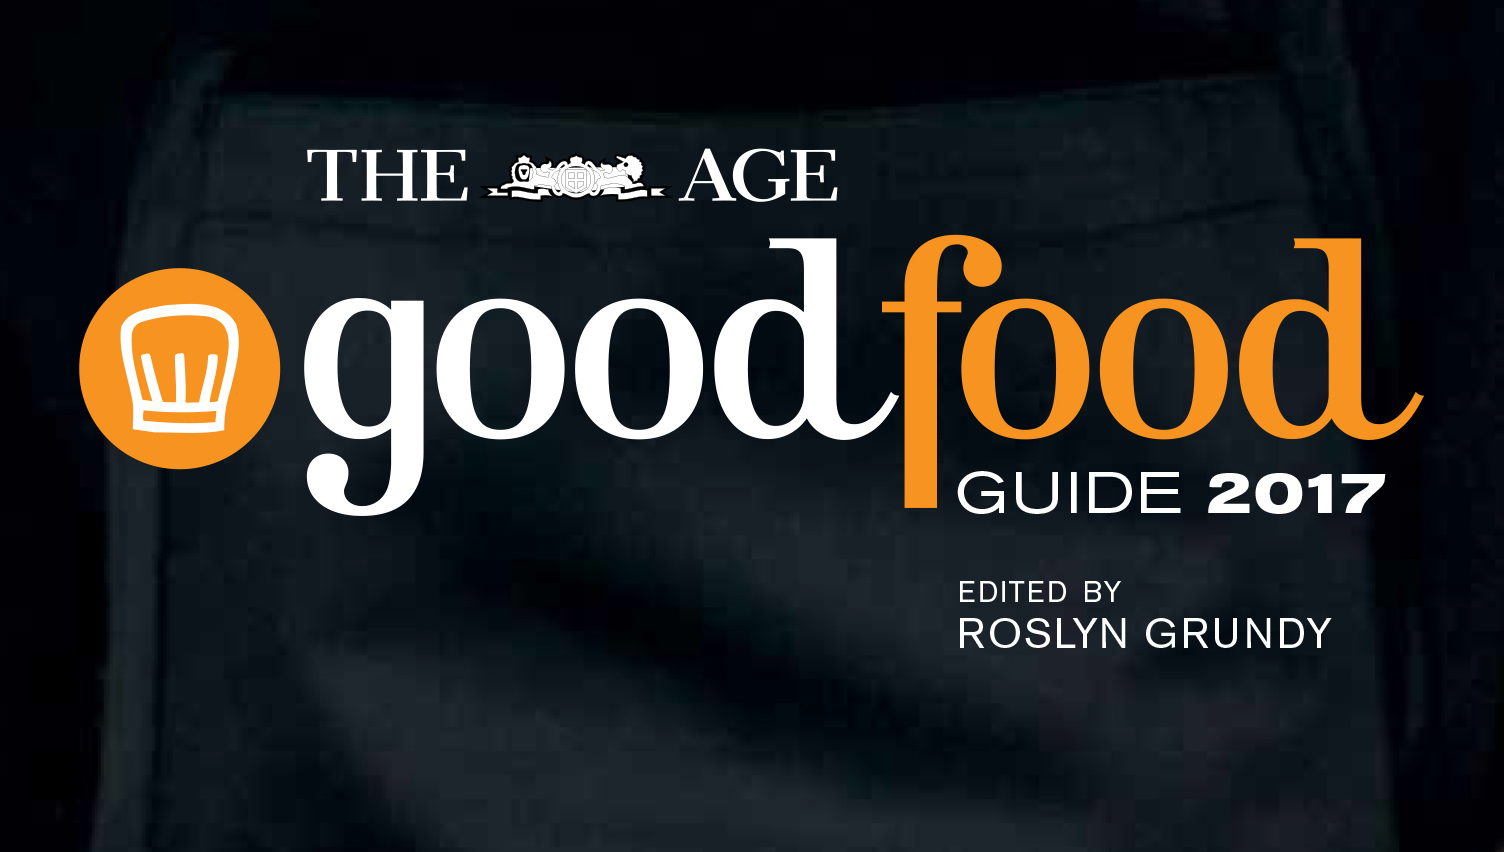 The age good food guide 2017 awards bacash 1 hat again for Cuisine good food guide 2017